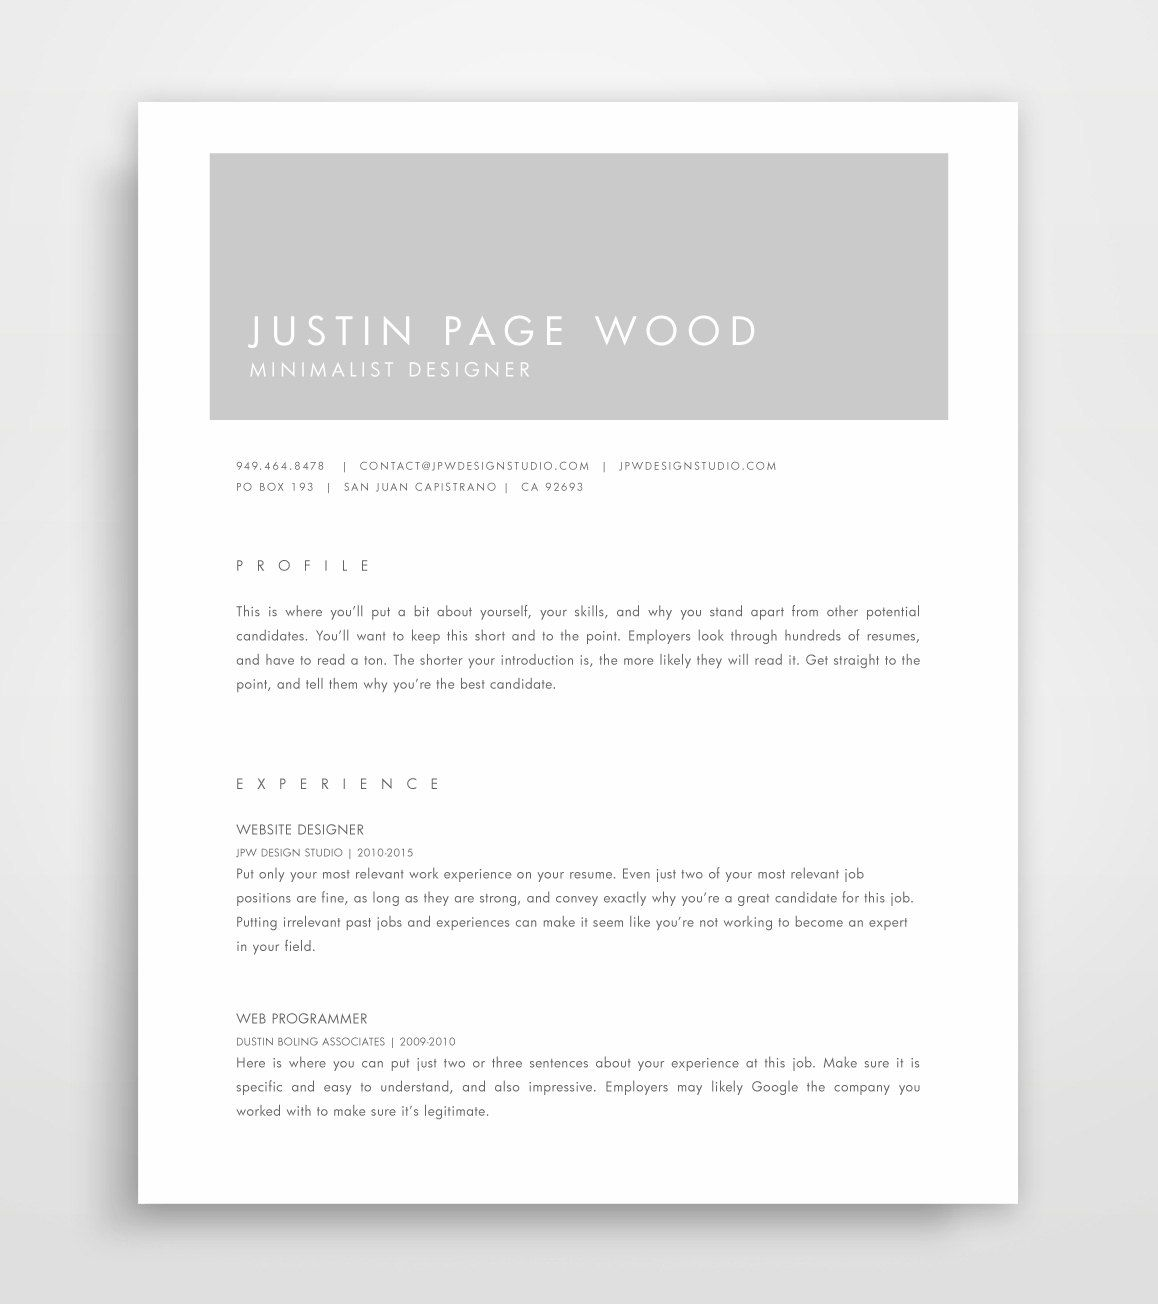 resume design  cv template  minimalist resume  modern resumes  grey resume  professional